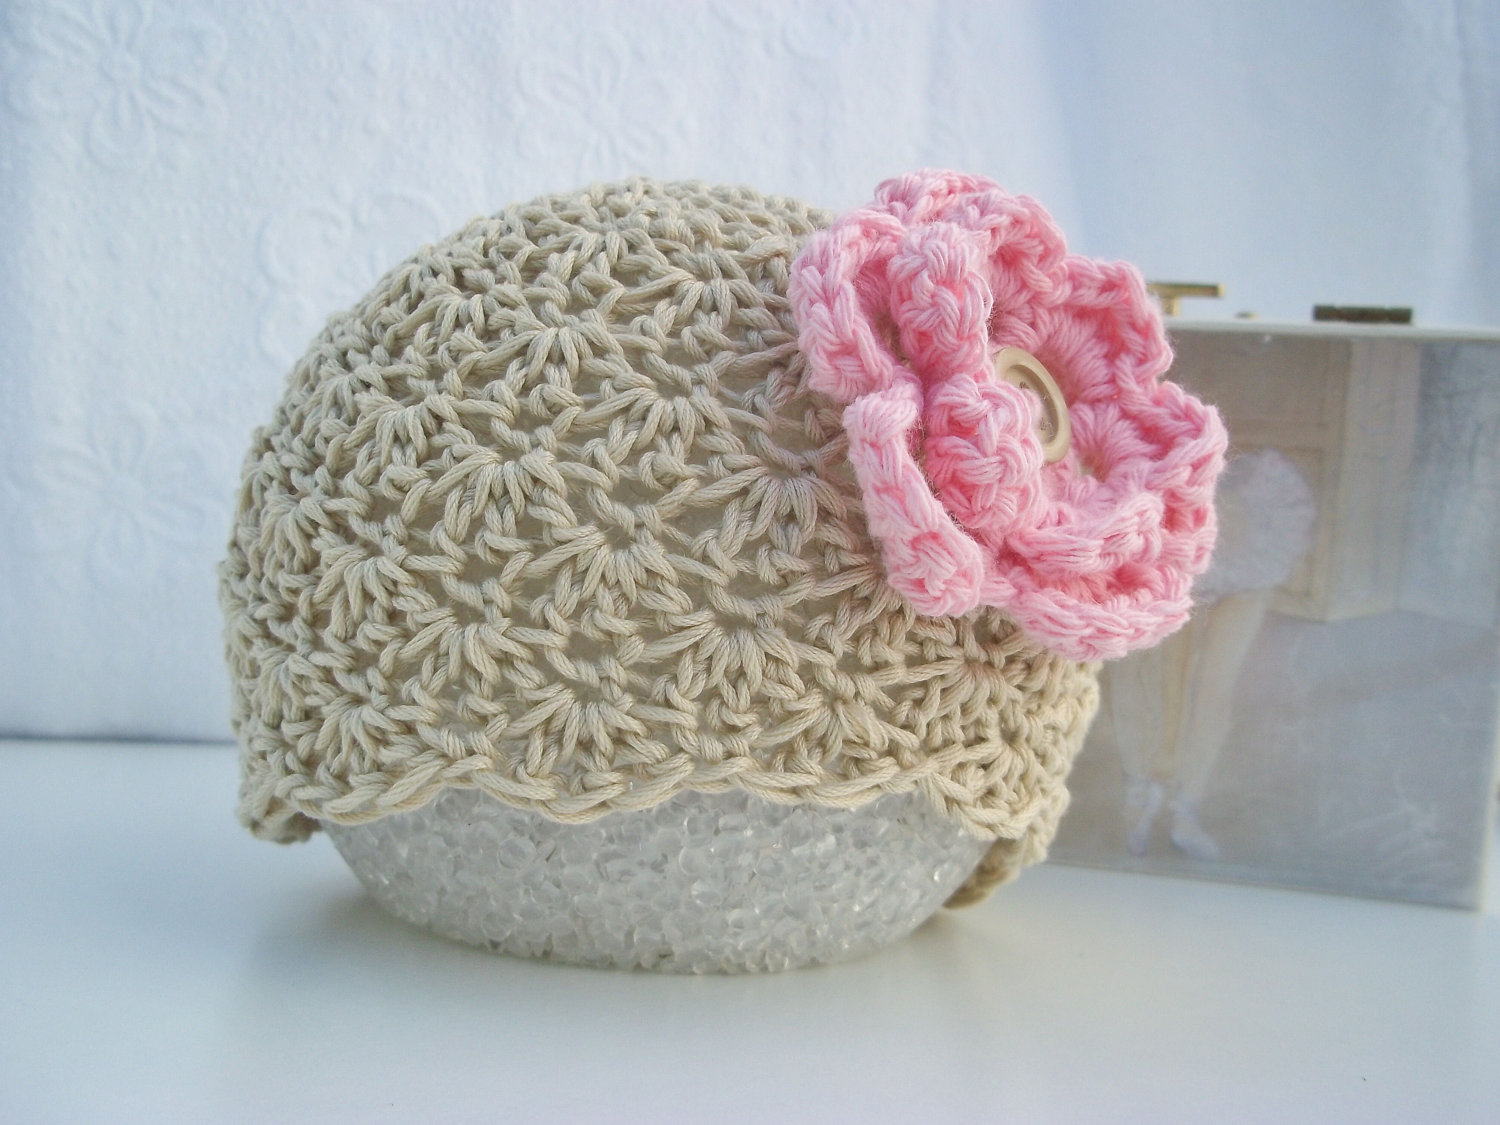 Crochet Pattern Newborn Girl Hat : Newborn Baby Girl Crochet Patterns images